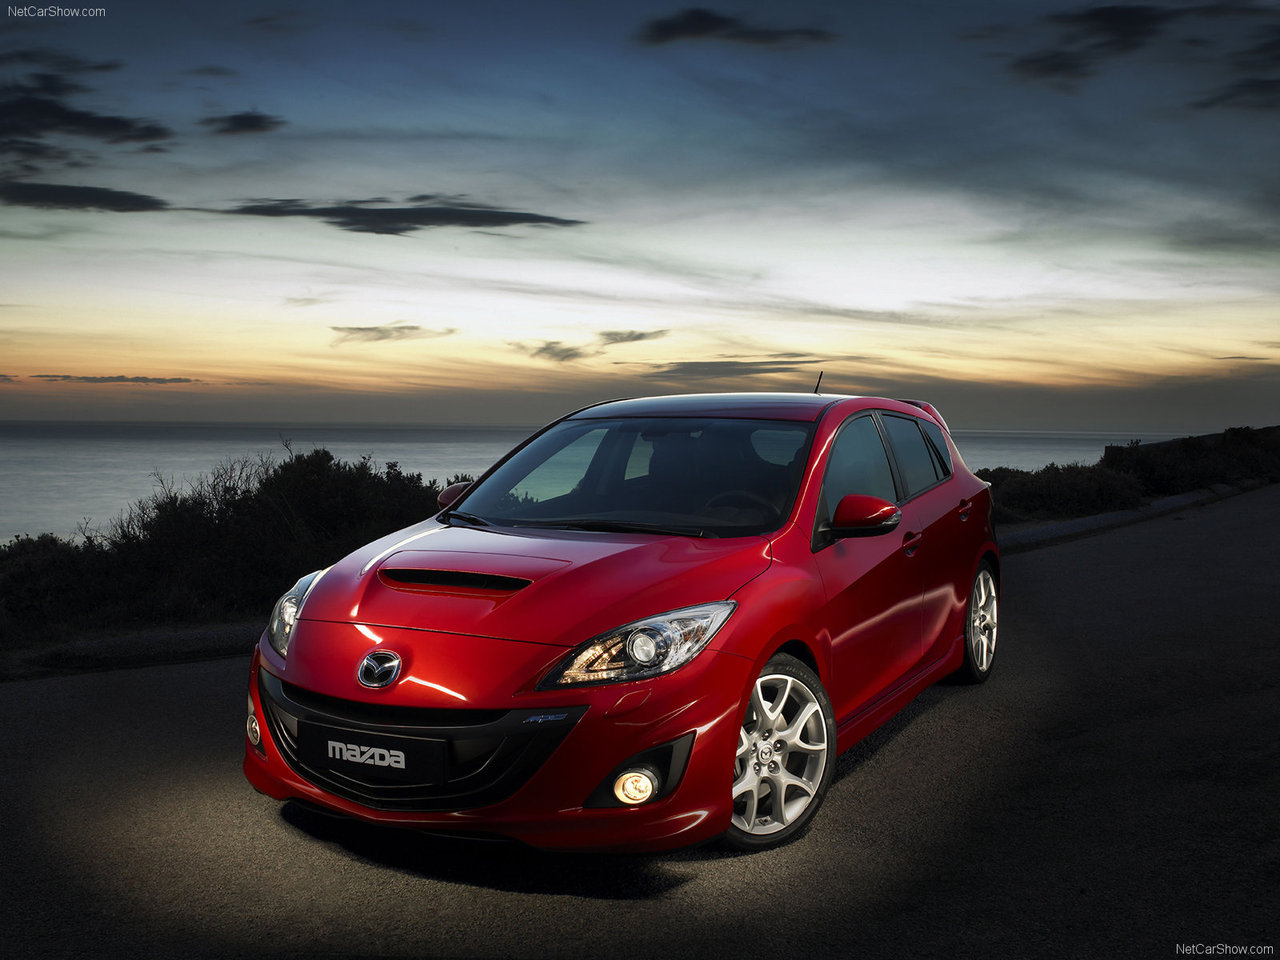 MazdaSpeed3 wallpaper   hdwallpaper20com 1280x960